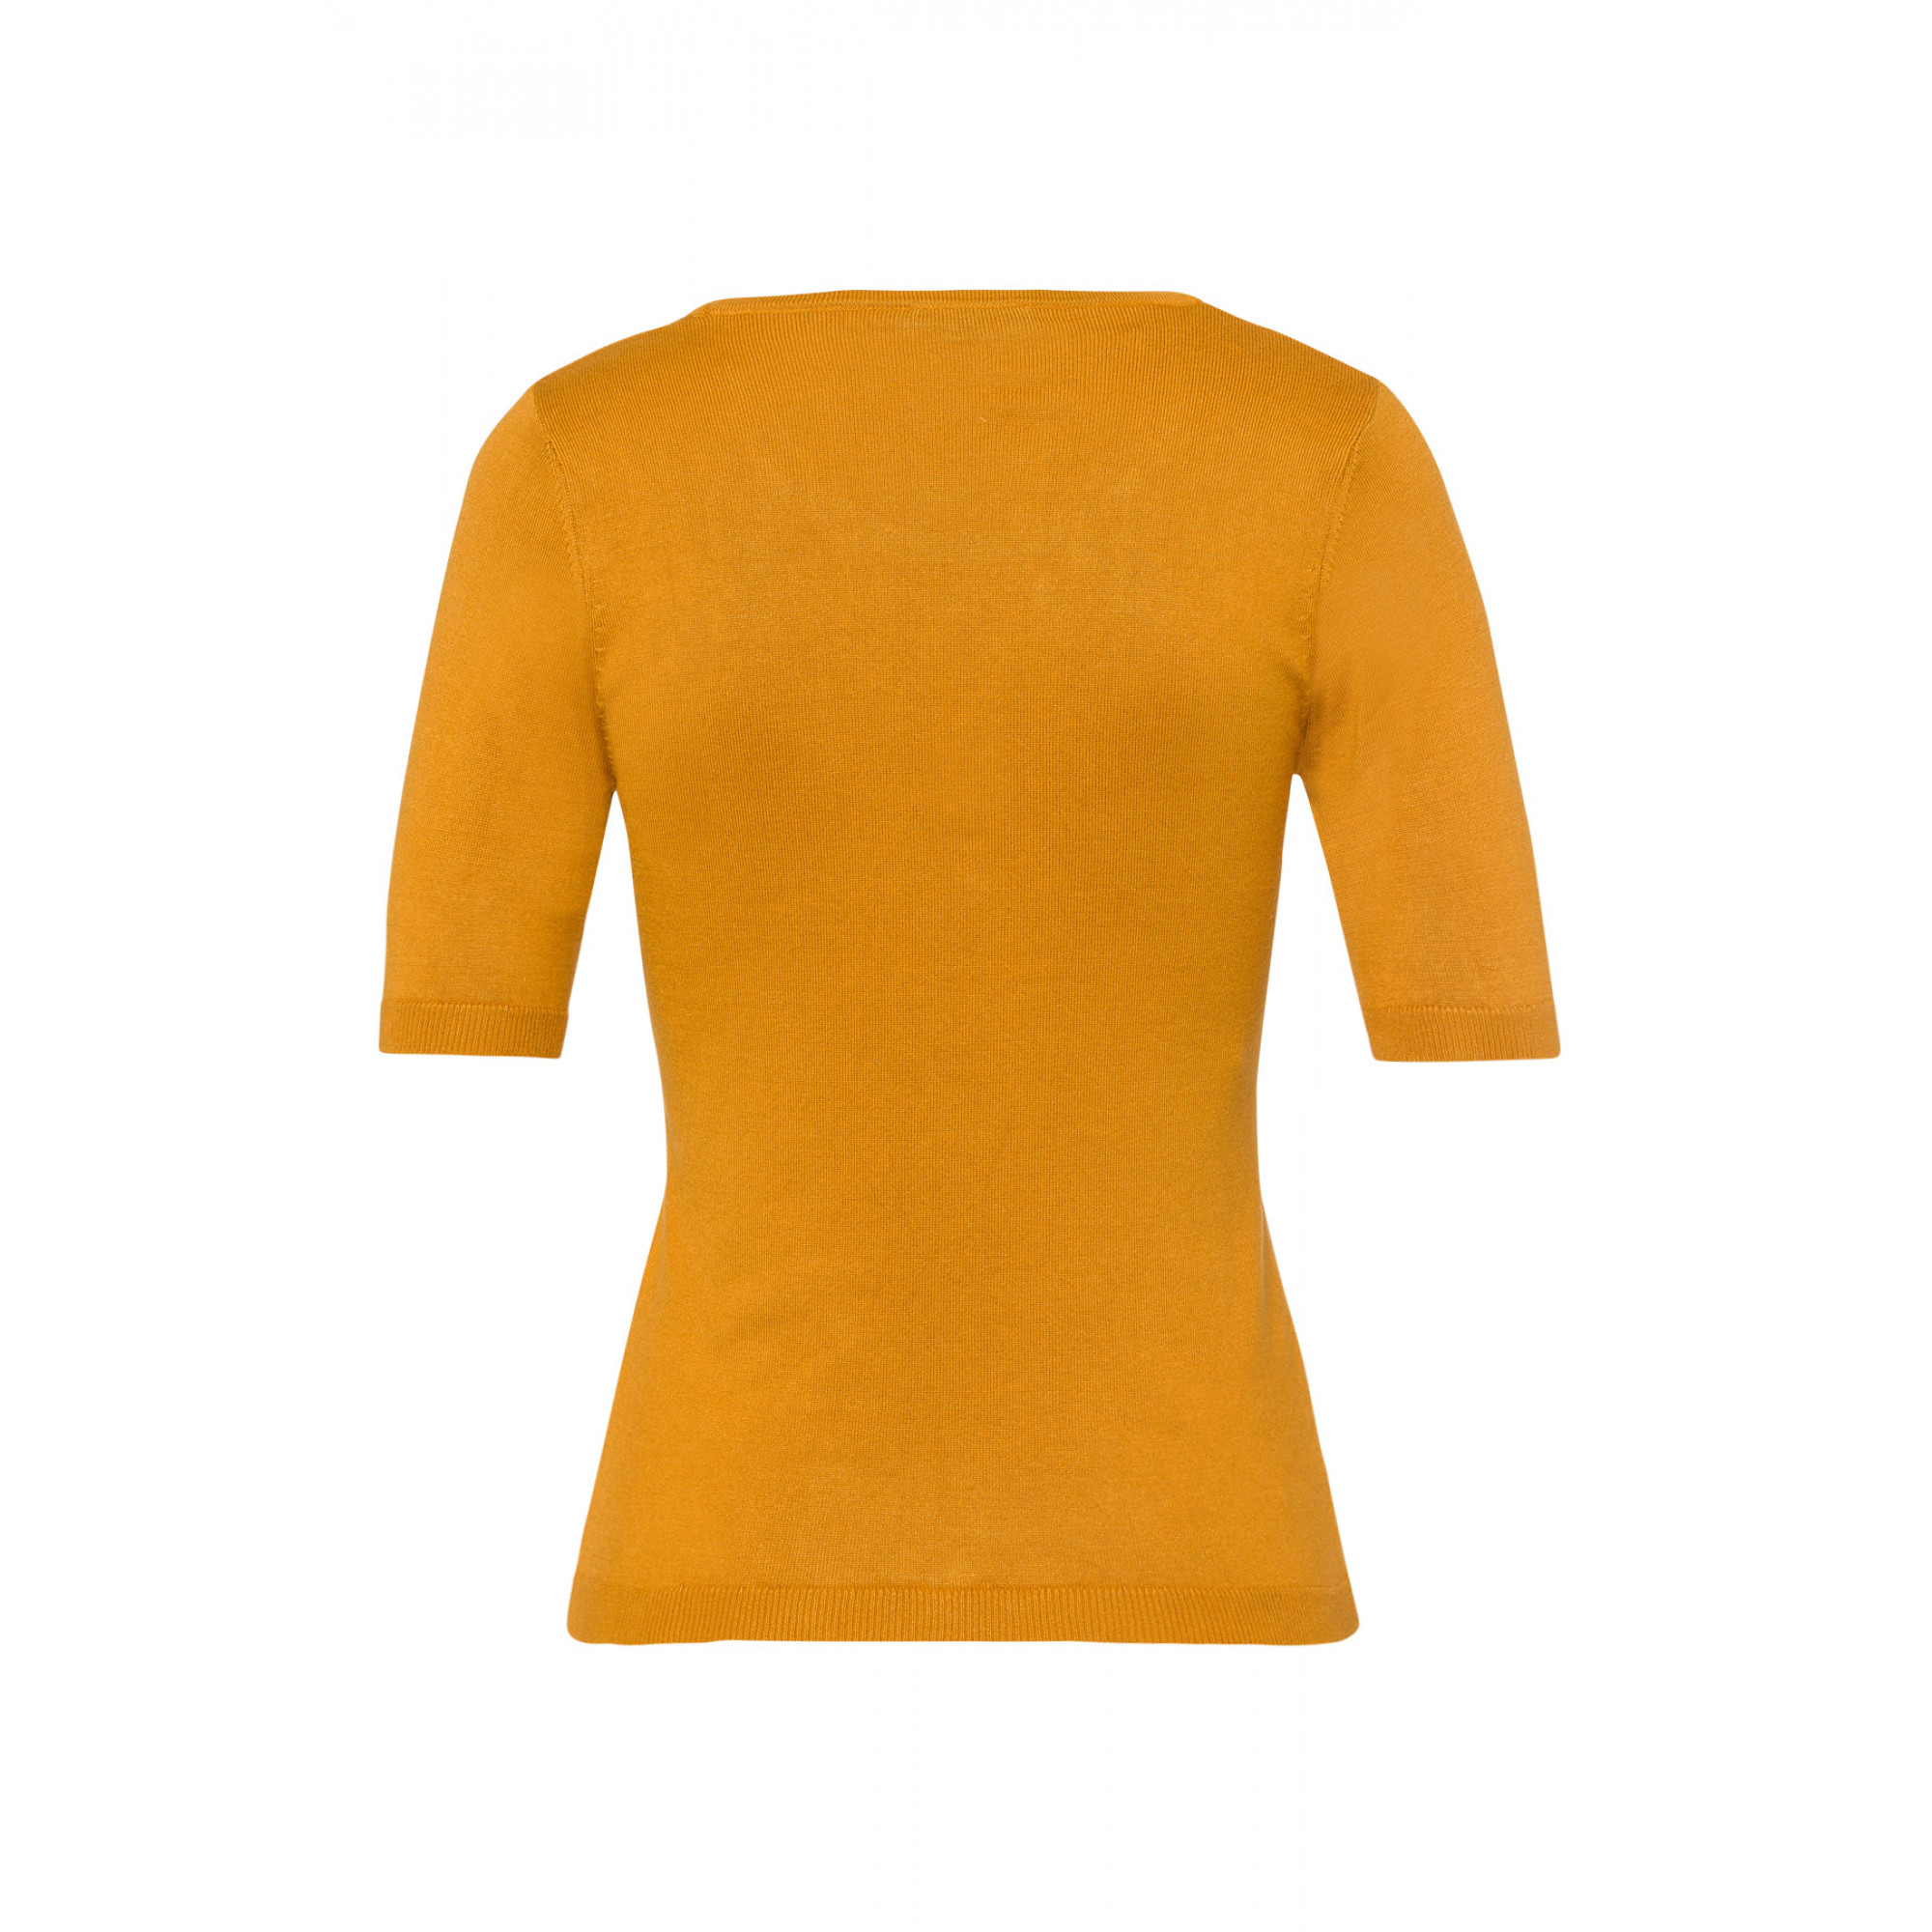 Feinstrick-Pullover, autumn yellow 91911513-0185 2